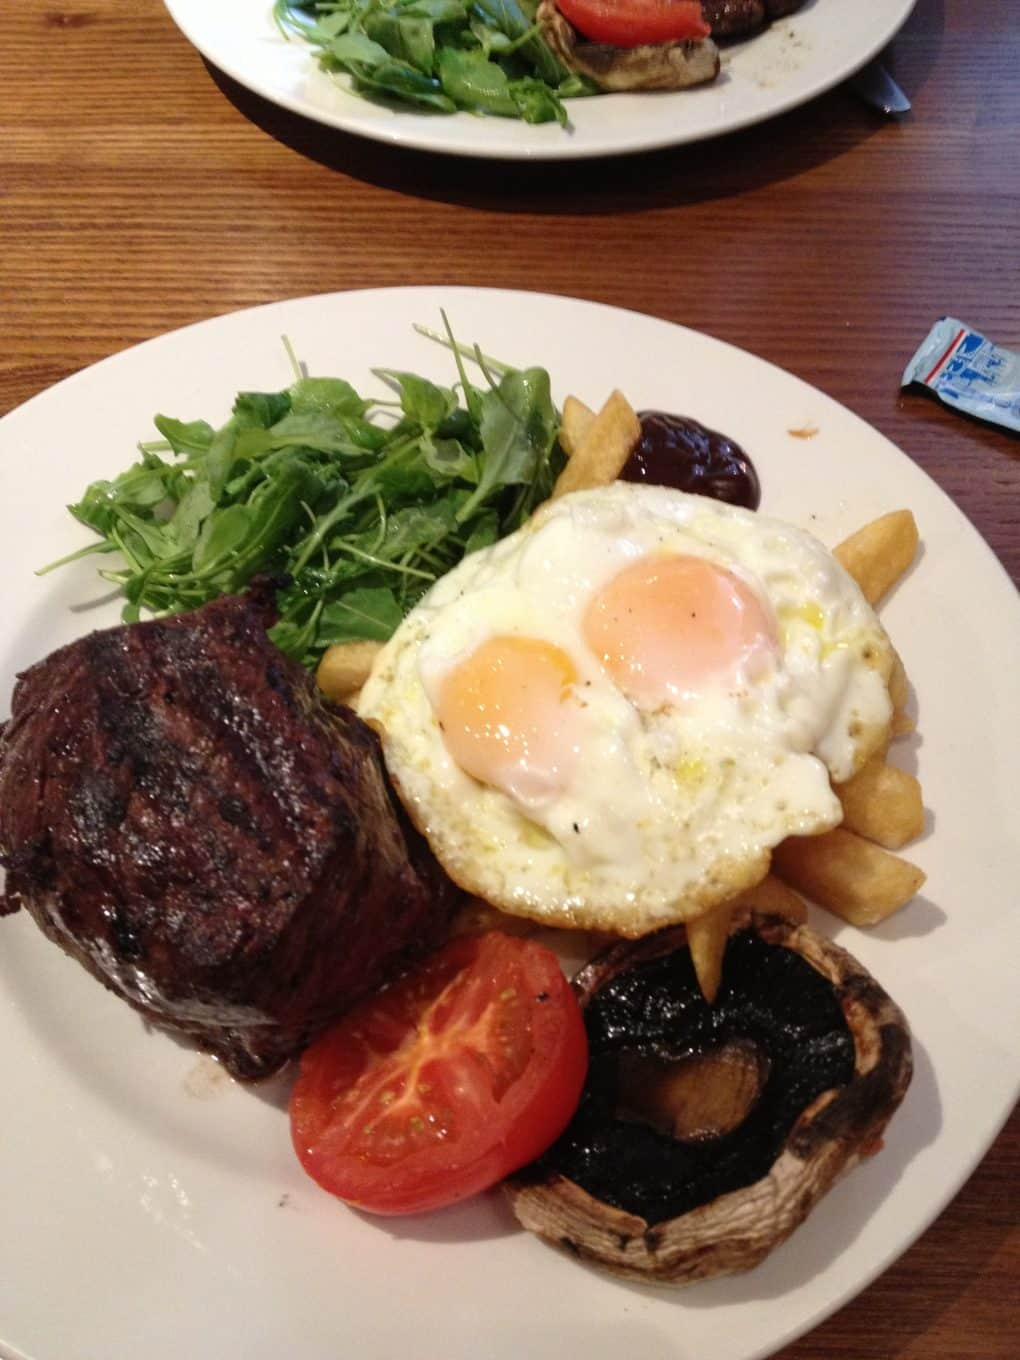 16oz Steak with Eggs, Chips and Salad